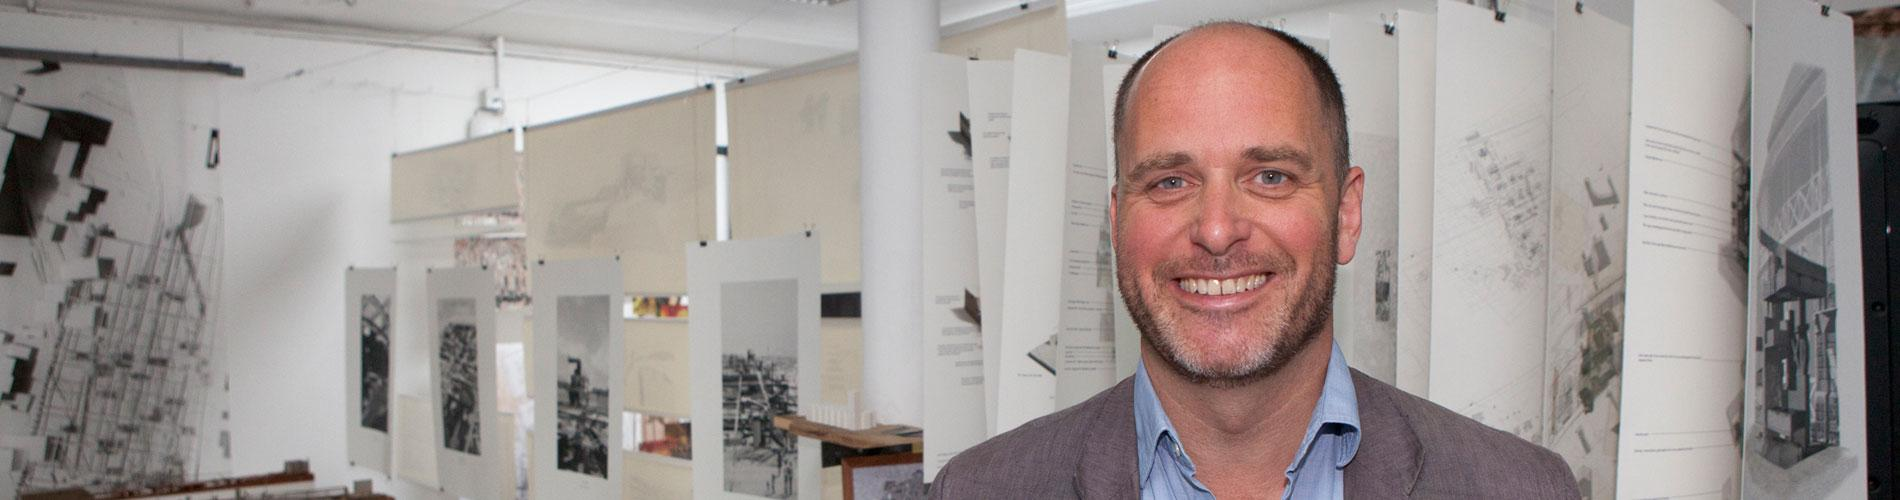 Edward Hollis's research demonstrates the value of derelict historic buildings.